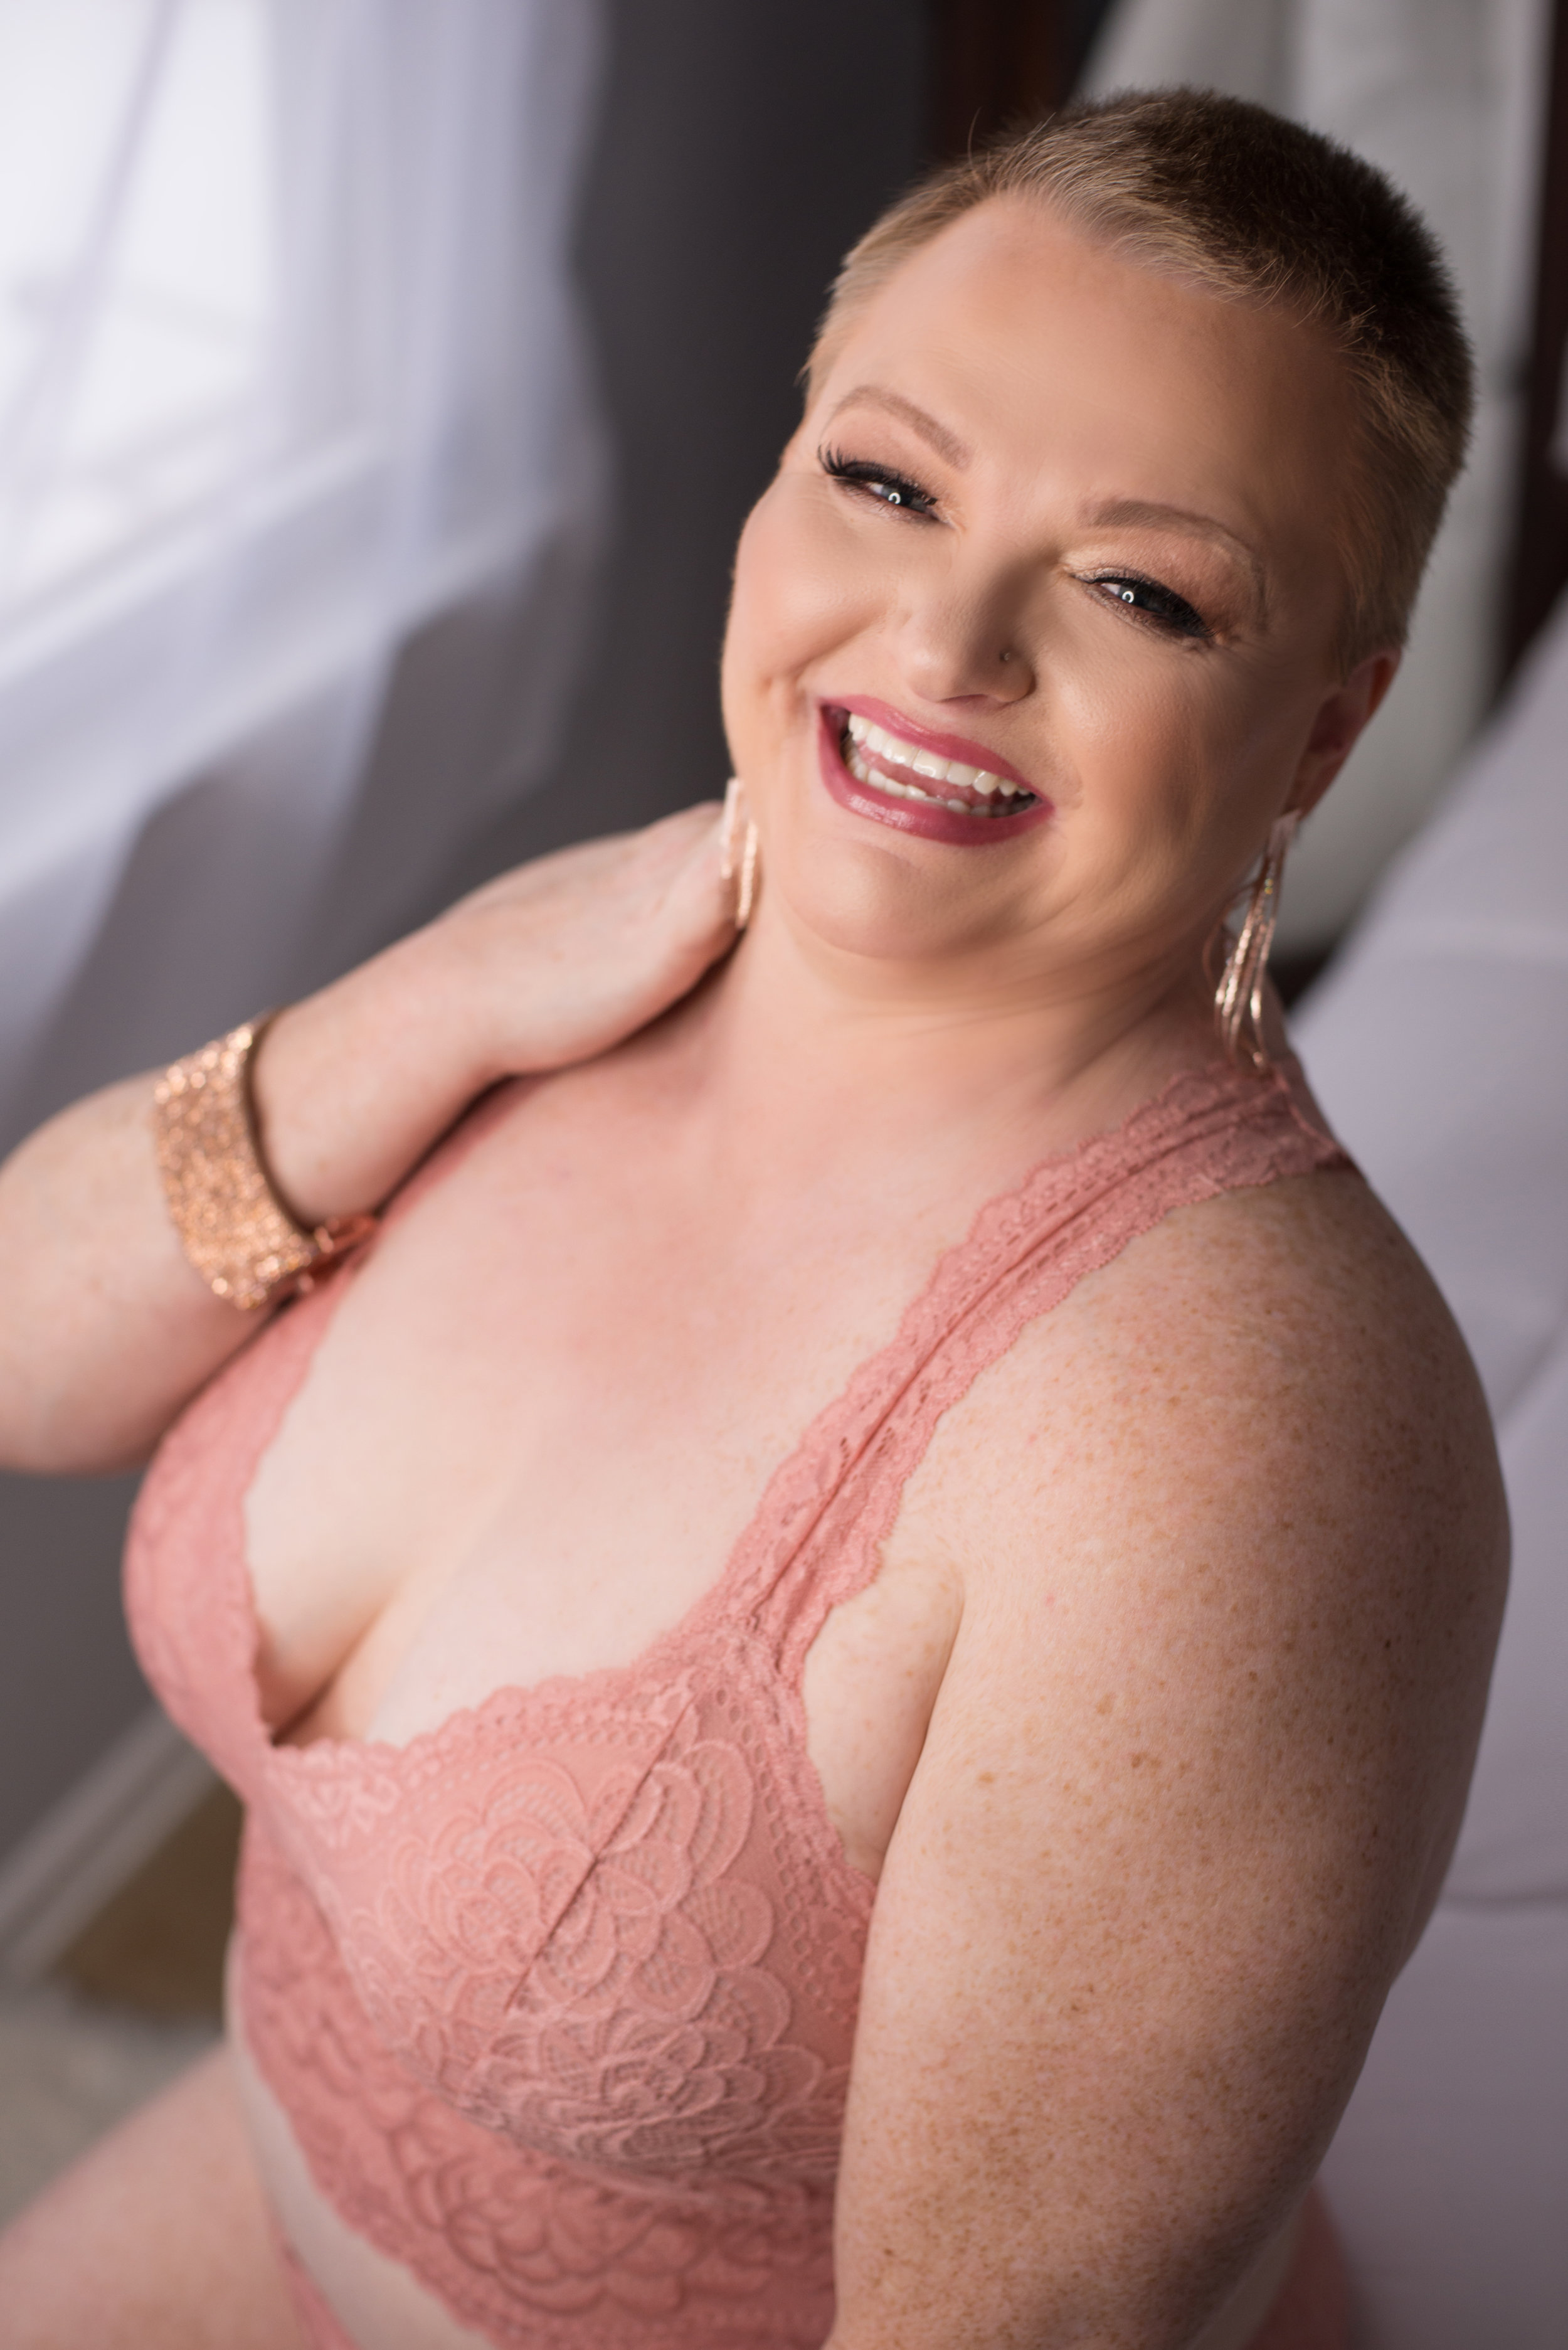 "Brave Boss Babe Connie - ""I had an amazing time at my boudoir photo shoot with Leah. Not only is she a warm, welcoming and inspiring woman, she is a fantastic photographer. I felt totally comfortable during the shoot and she kept me laughing the whole time. I was so excited to see my photos right after we finished and I couldn't believe how wonderful they turned out. The entire experience was such a confidence booster for me and I highly recommend having Leah as your photographer."""